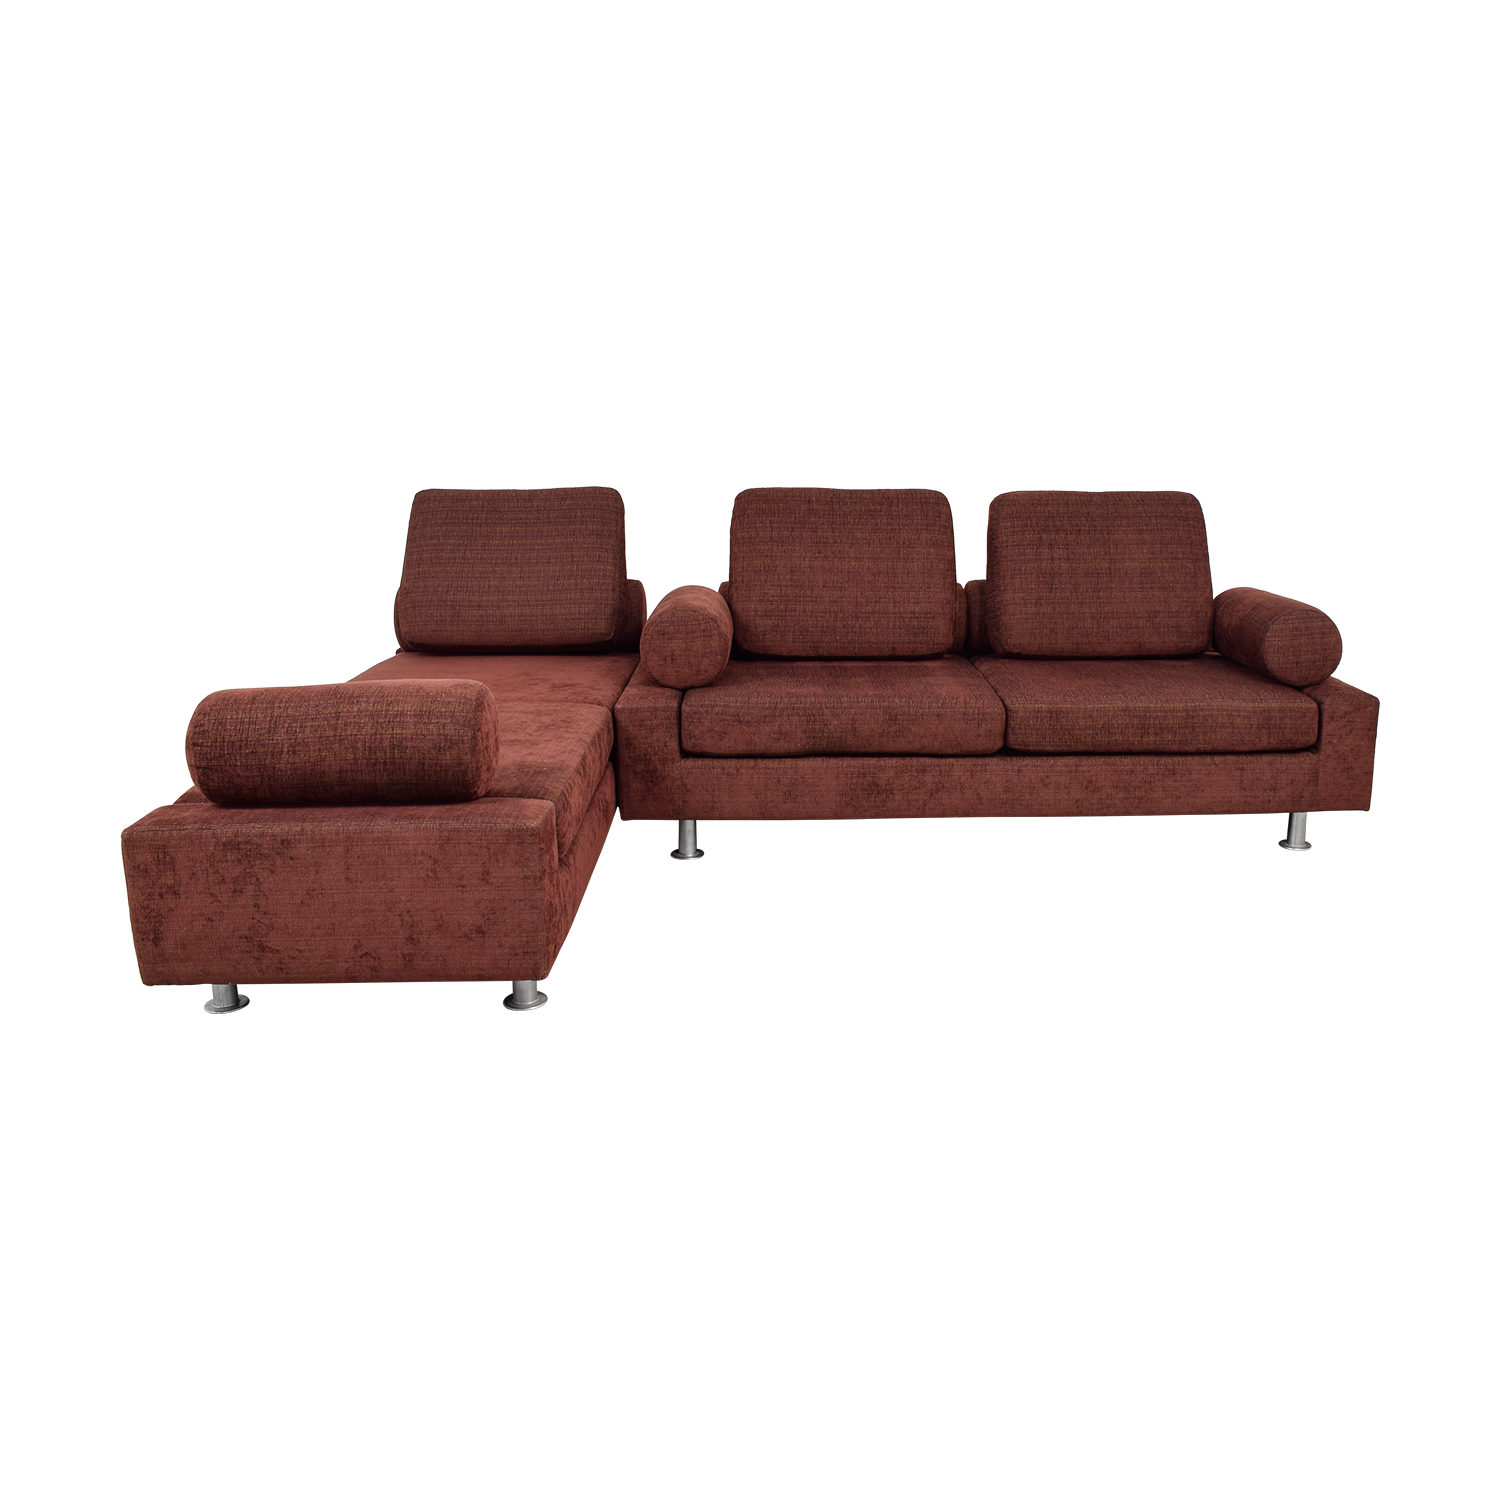 78% OFF - Shermag Normand Couture for Shermag Cameleon Convertible Sofa /  Sofas